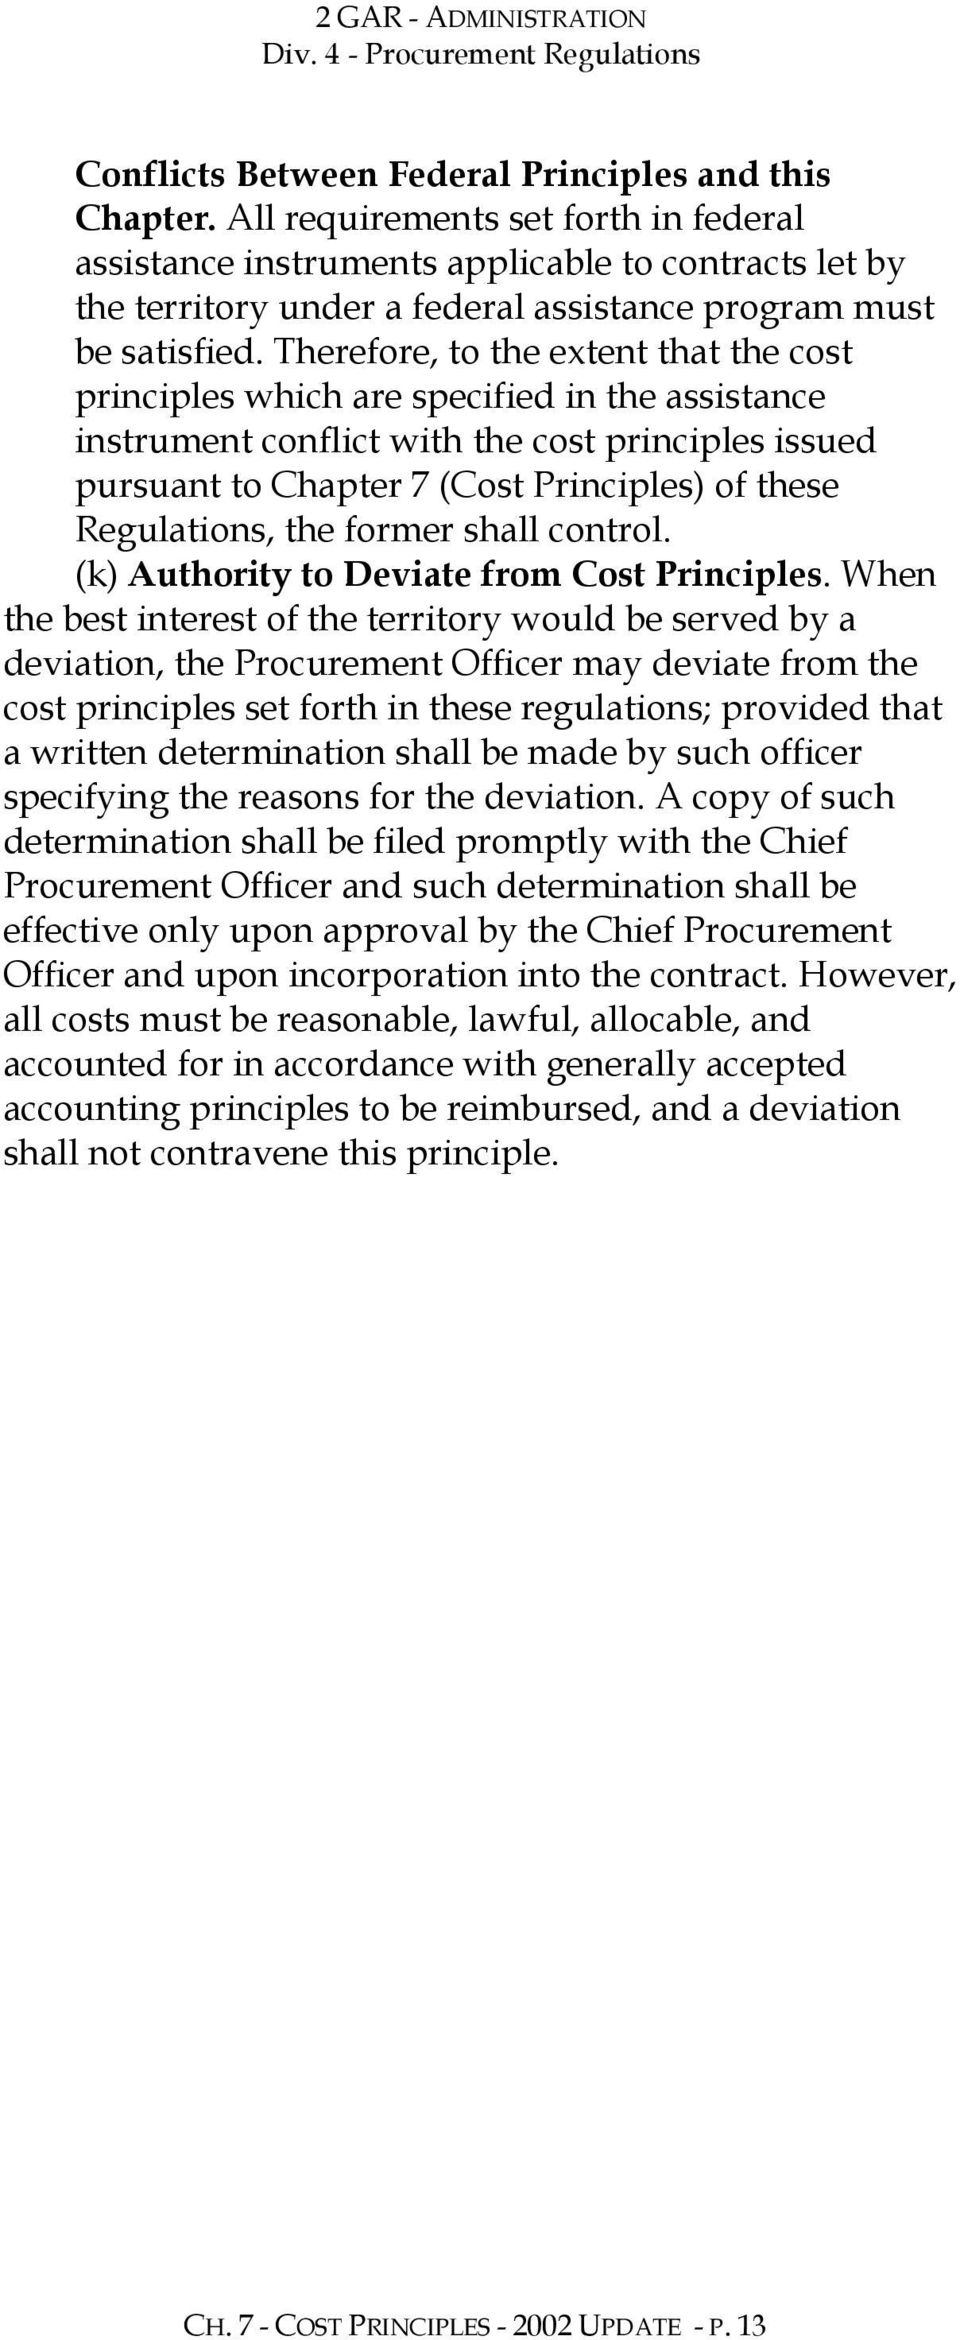 Therefore, to the extent that the cost principles which are specified in the assistance instrument conflict with the cost principles issued pursuant to Chapter 7 (Cost Principles) of these